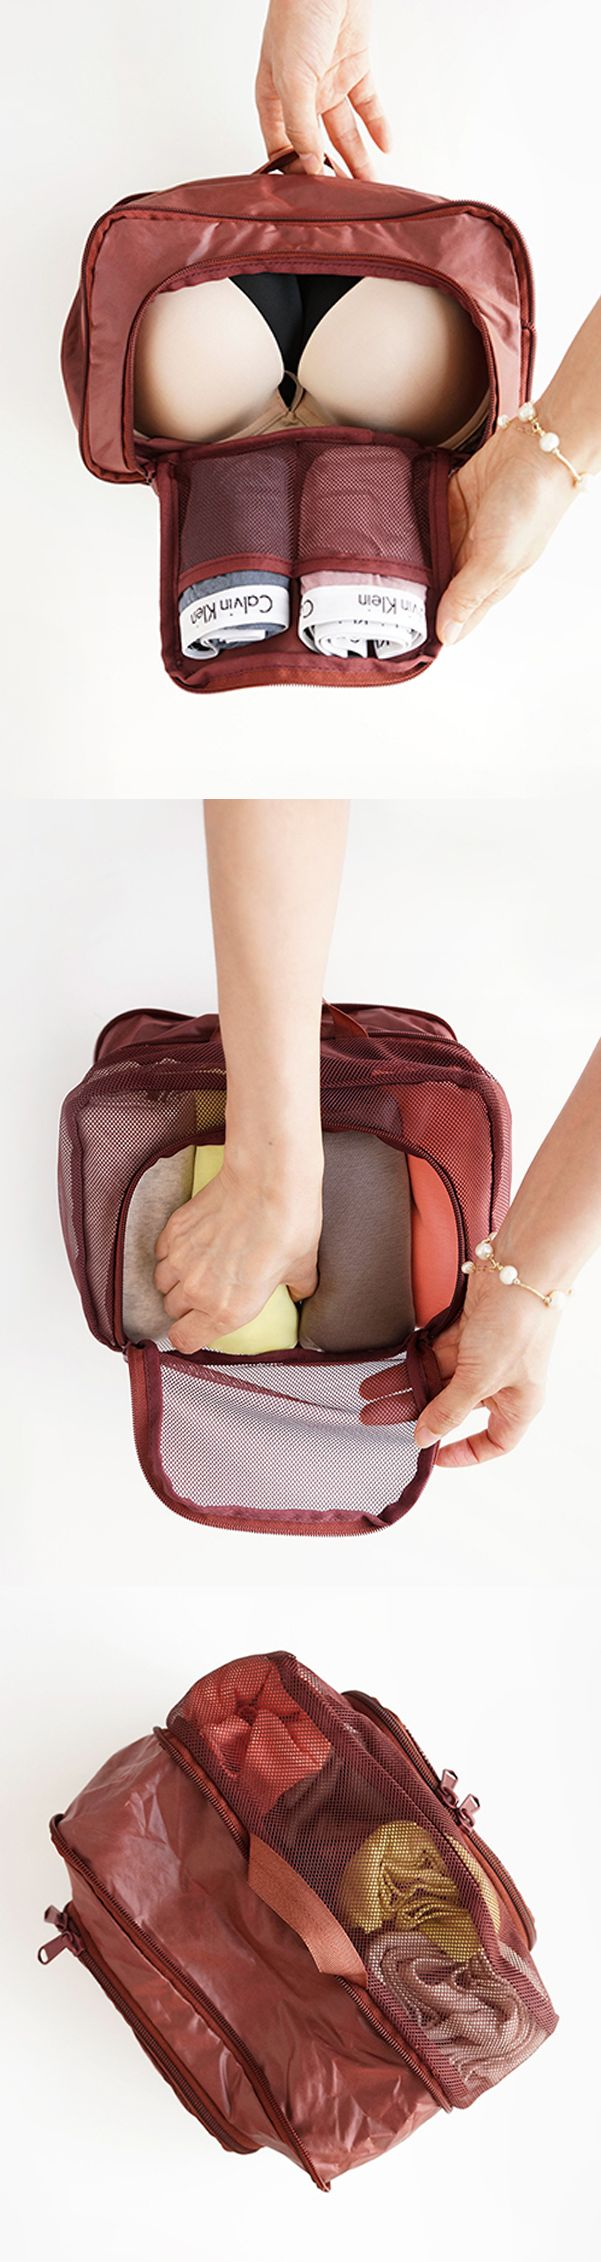 We're taking undie organization to the next level! This useful pouch is double-sided & expandable! One side has a roomy mesh compartment that fits 3-4 bras or 20 pairs of panties while the other side is made of lightweight nylon & has 2 pockets for folded underwear or socks. This flexible pouch won't add weight to your luggage & can fit your needs whether you want to fit it into tight spaces or fit more inside! Learn more about this unique pouch, pack it on your next trip, & travel light as…